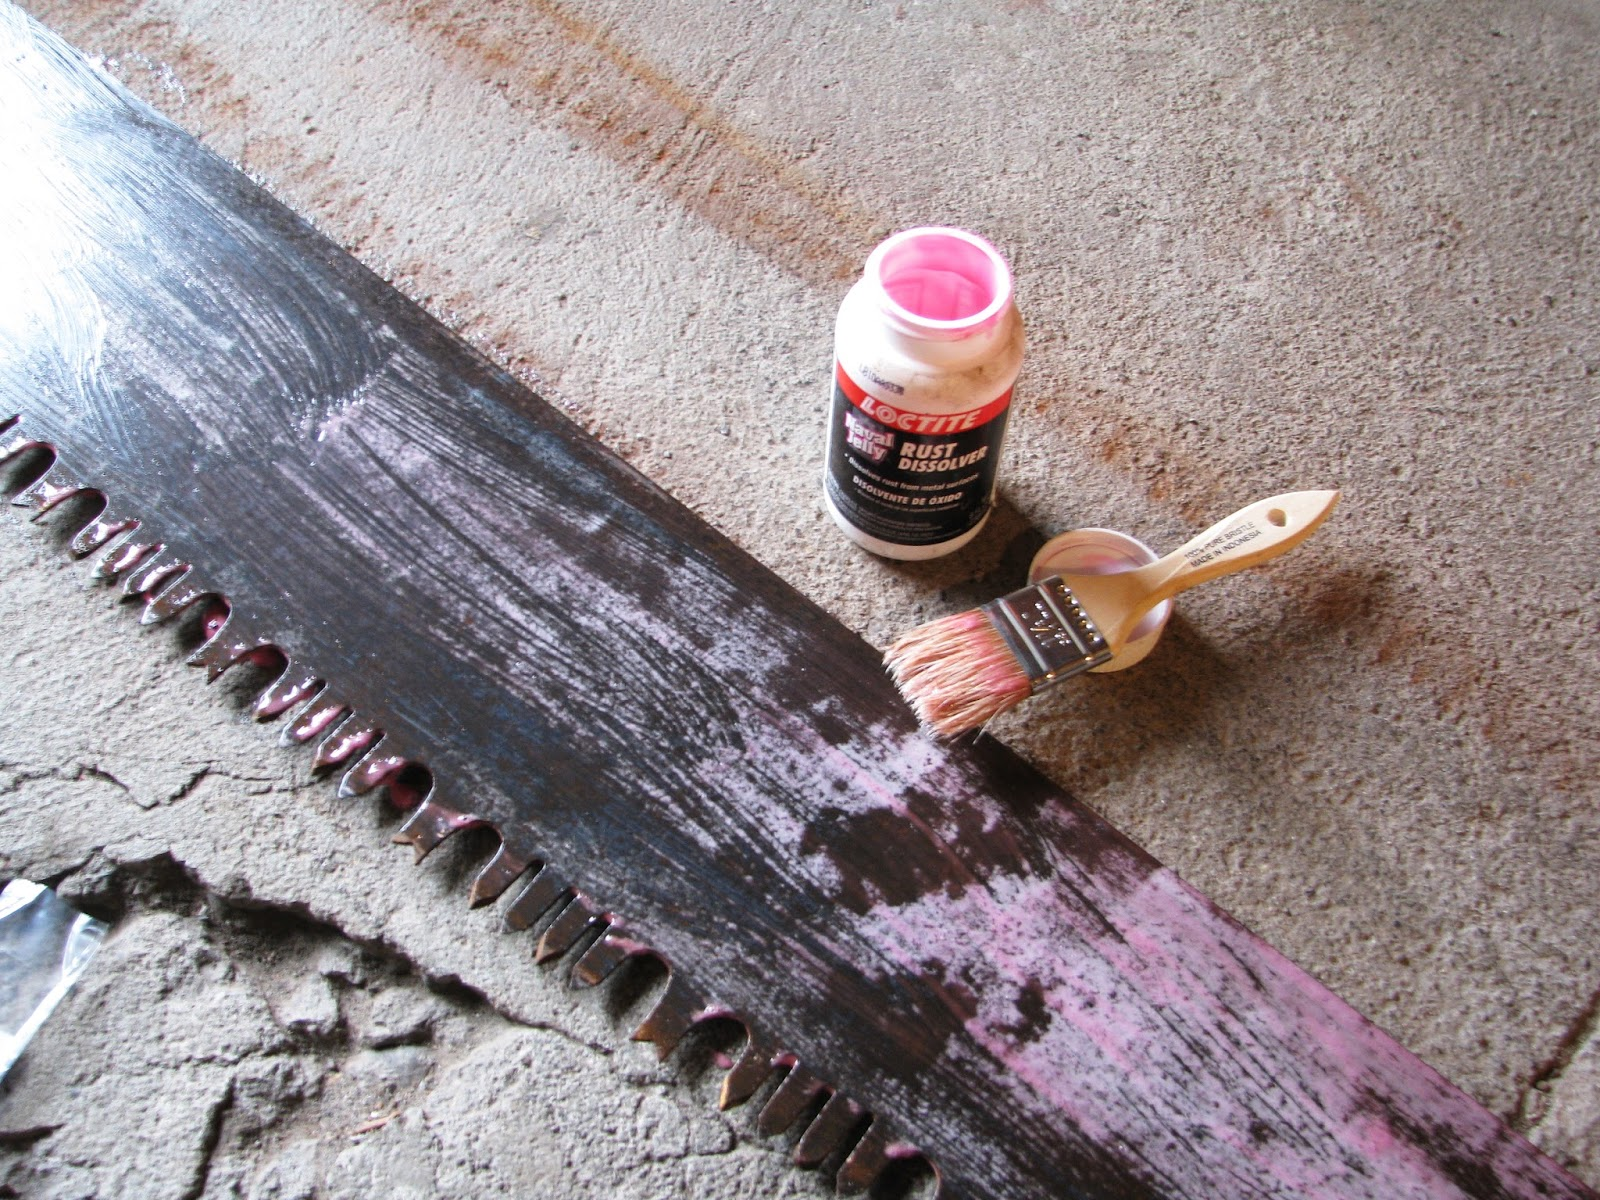 removing rust with navy jelly